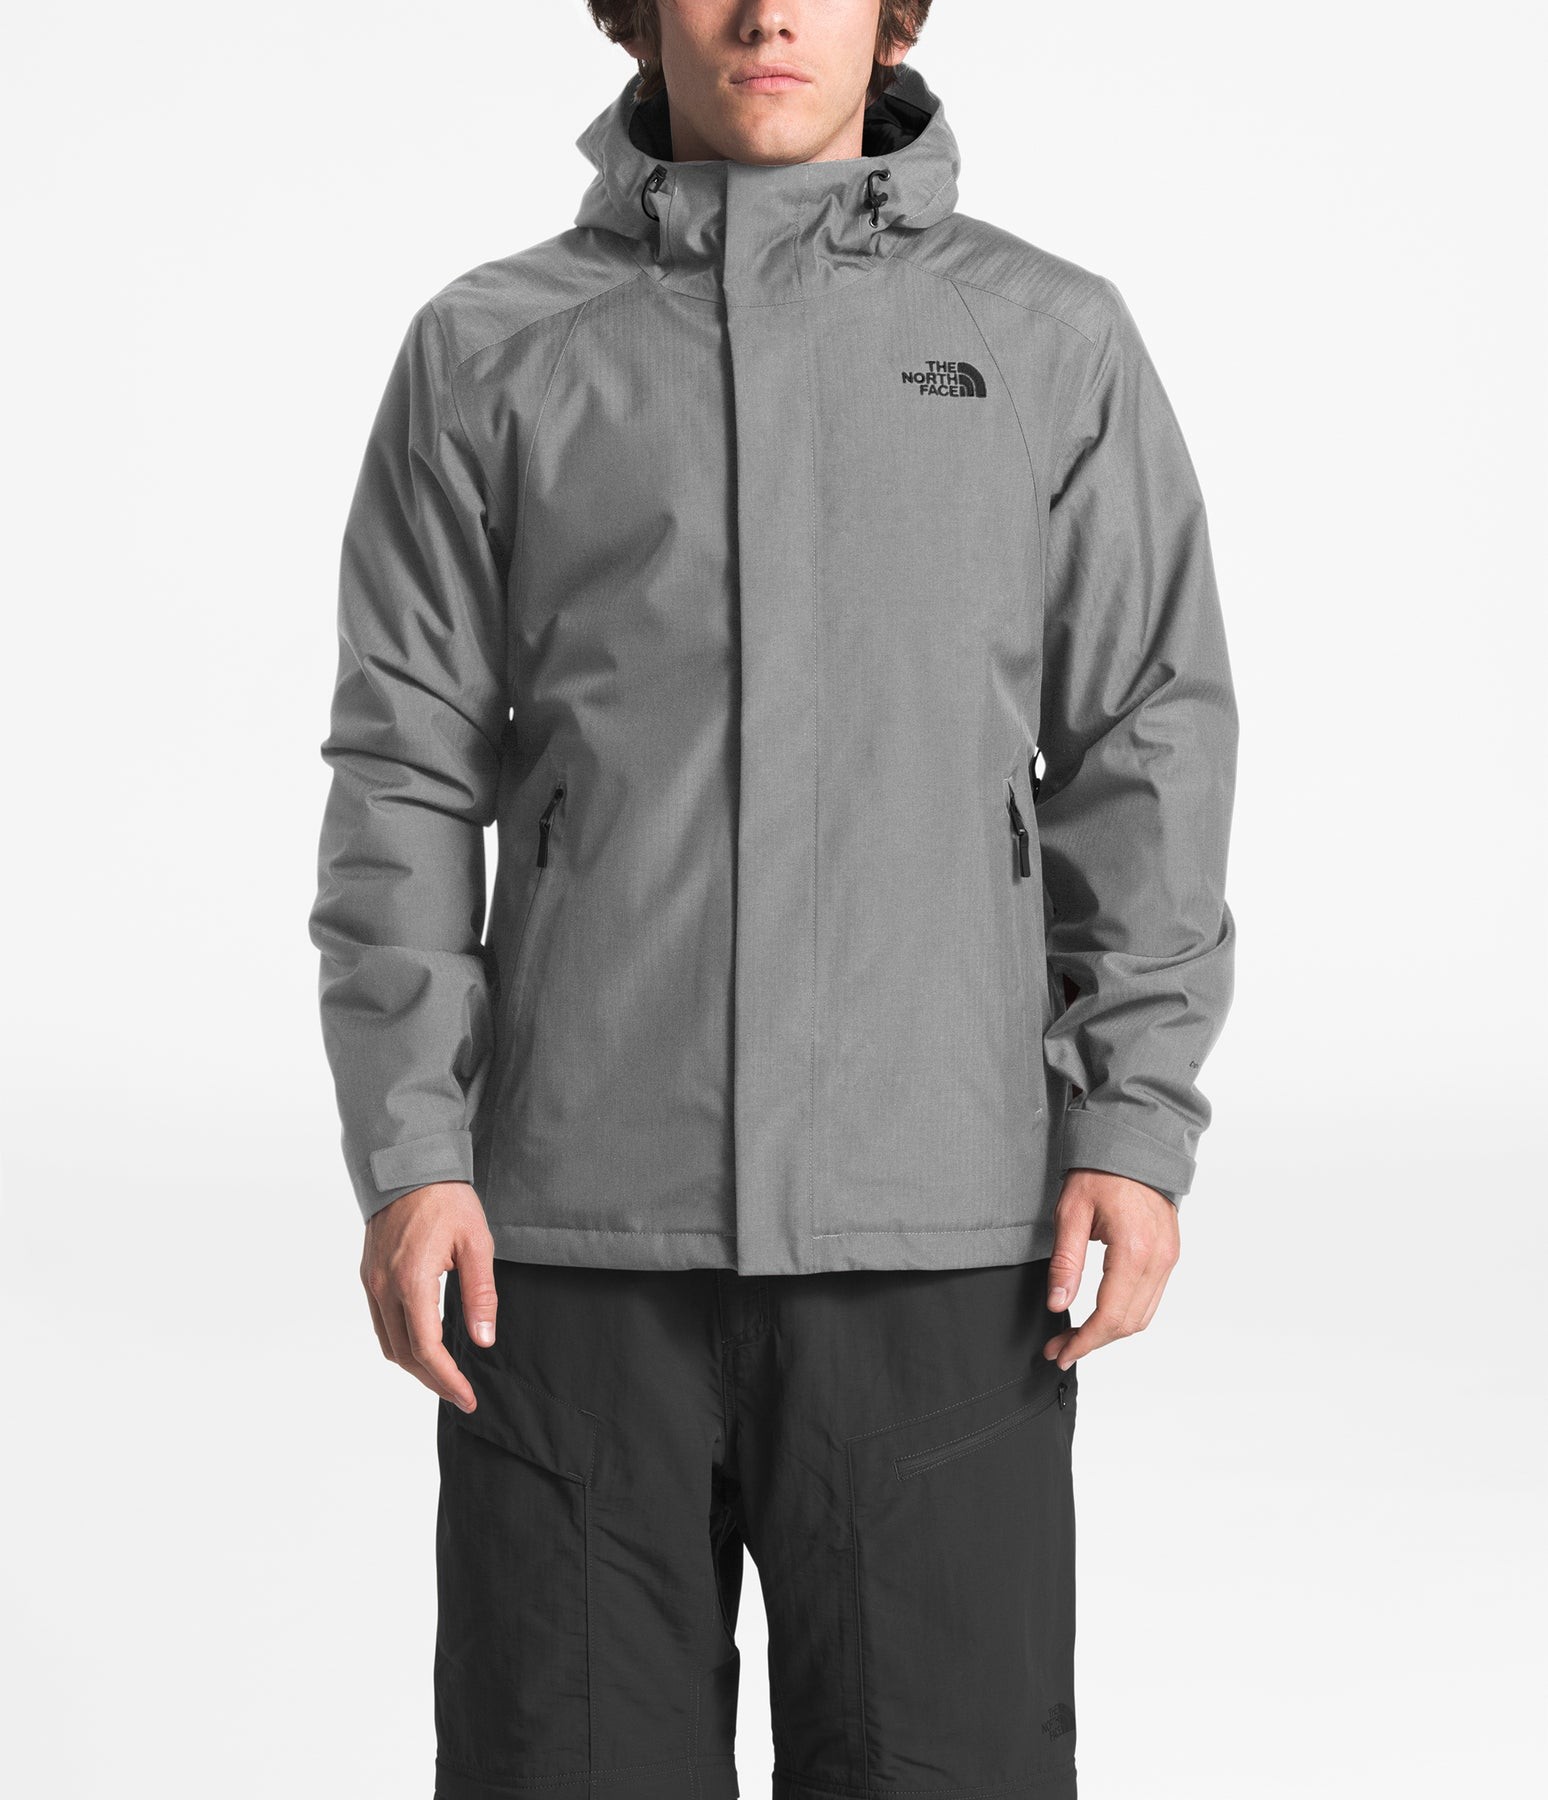 79a4a932b The North Face Men's Inlux Insulated Jacket - A2TBR - TNF Medium Grey  Heather